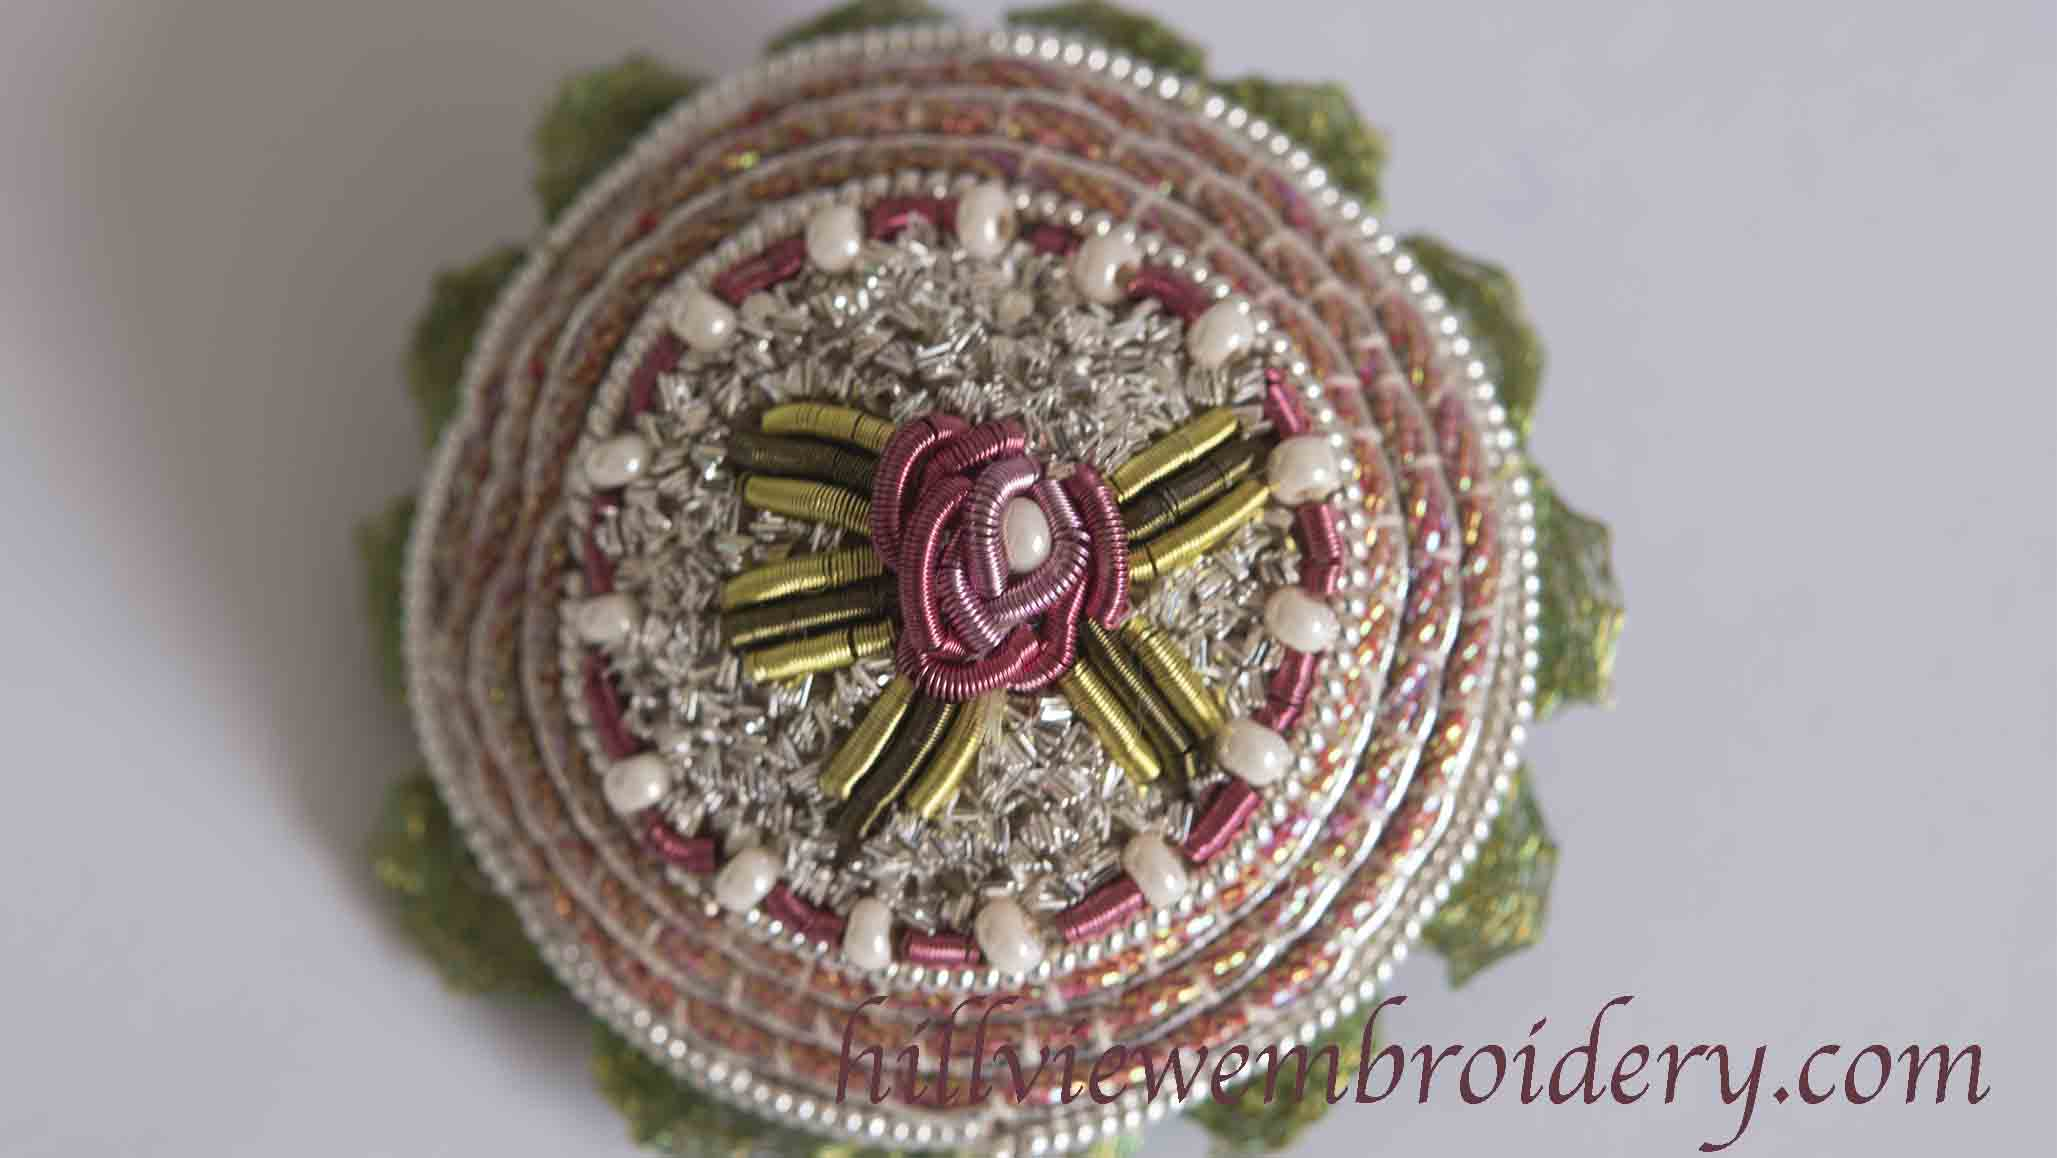 Completed brooch, designed by Jenny Adin-Christie